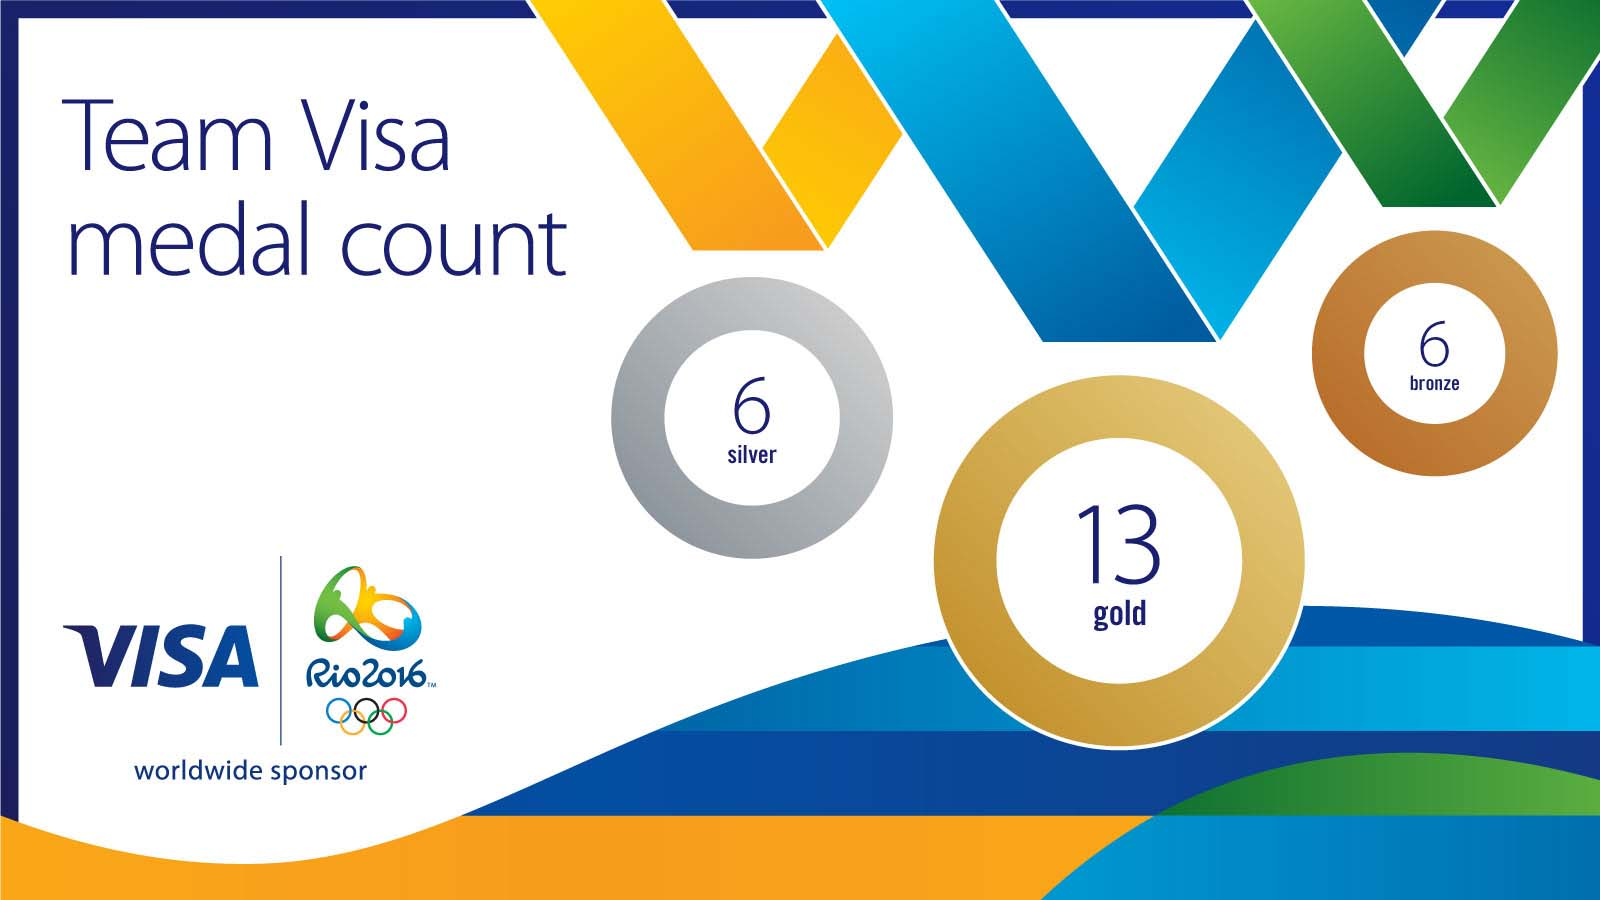 team-visa-medal-count-1600x900